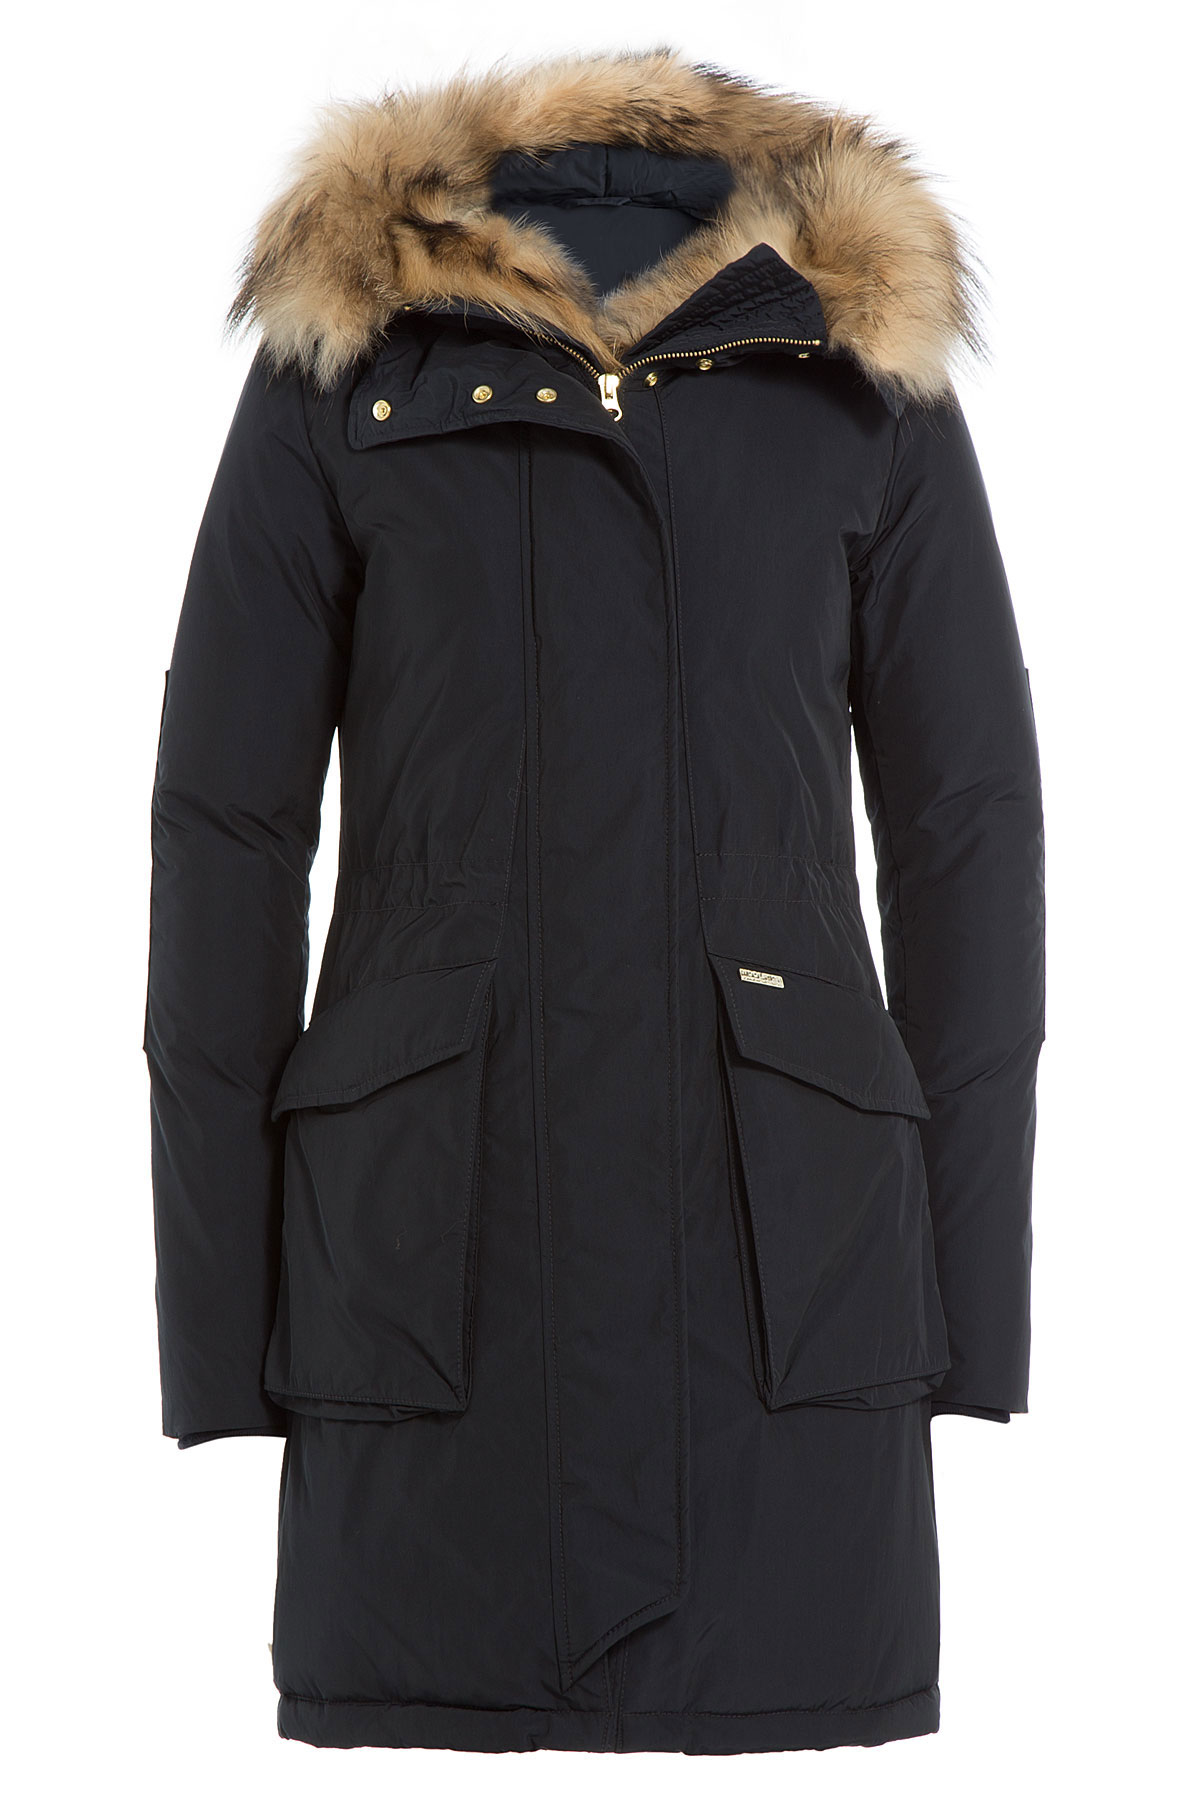 Woolrich Military Eskimo Down Parka With Fur-trimmed Hood - Blue ...